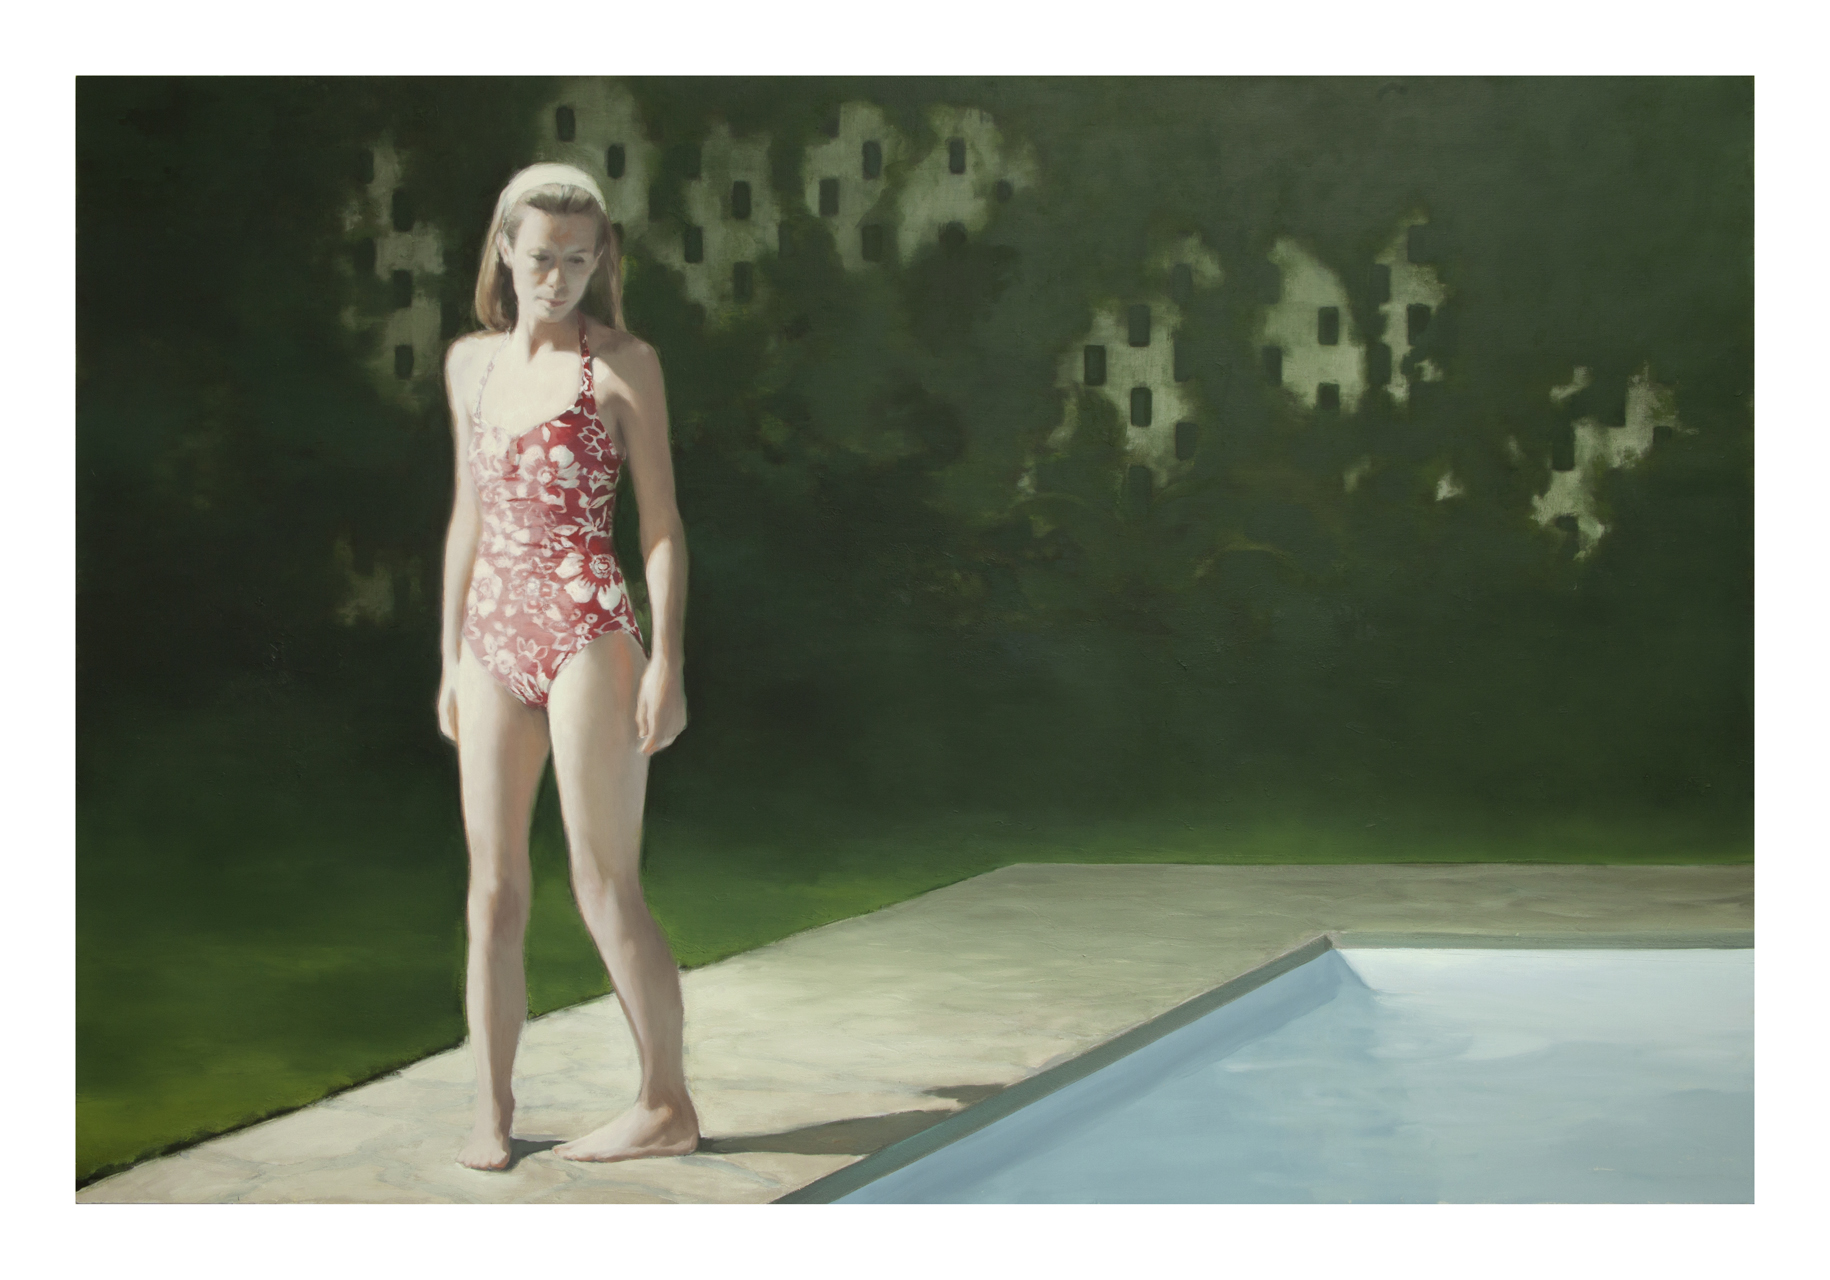 Jonathan Wateridge, Pool, 2017, Öl auf Leinwand, 180 x 270 cm